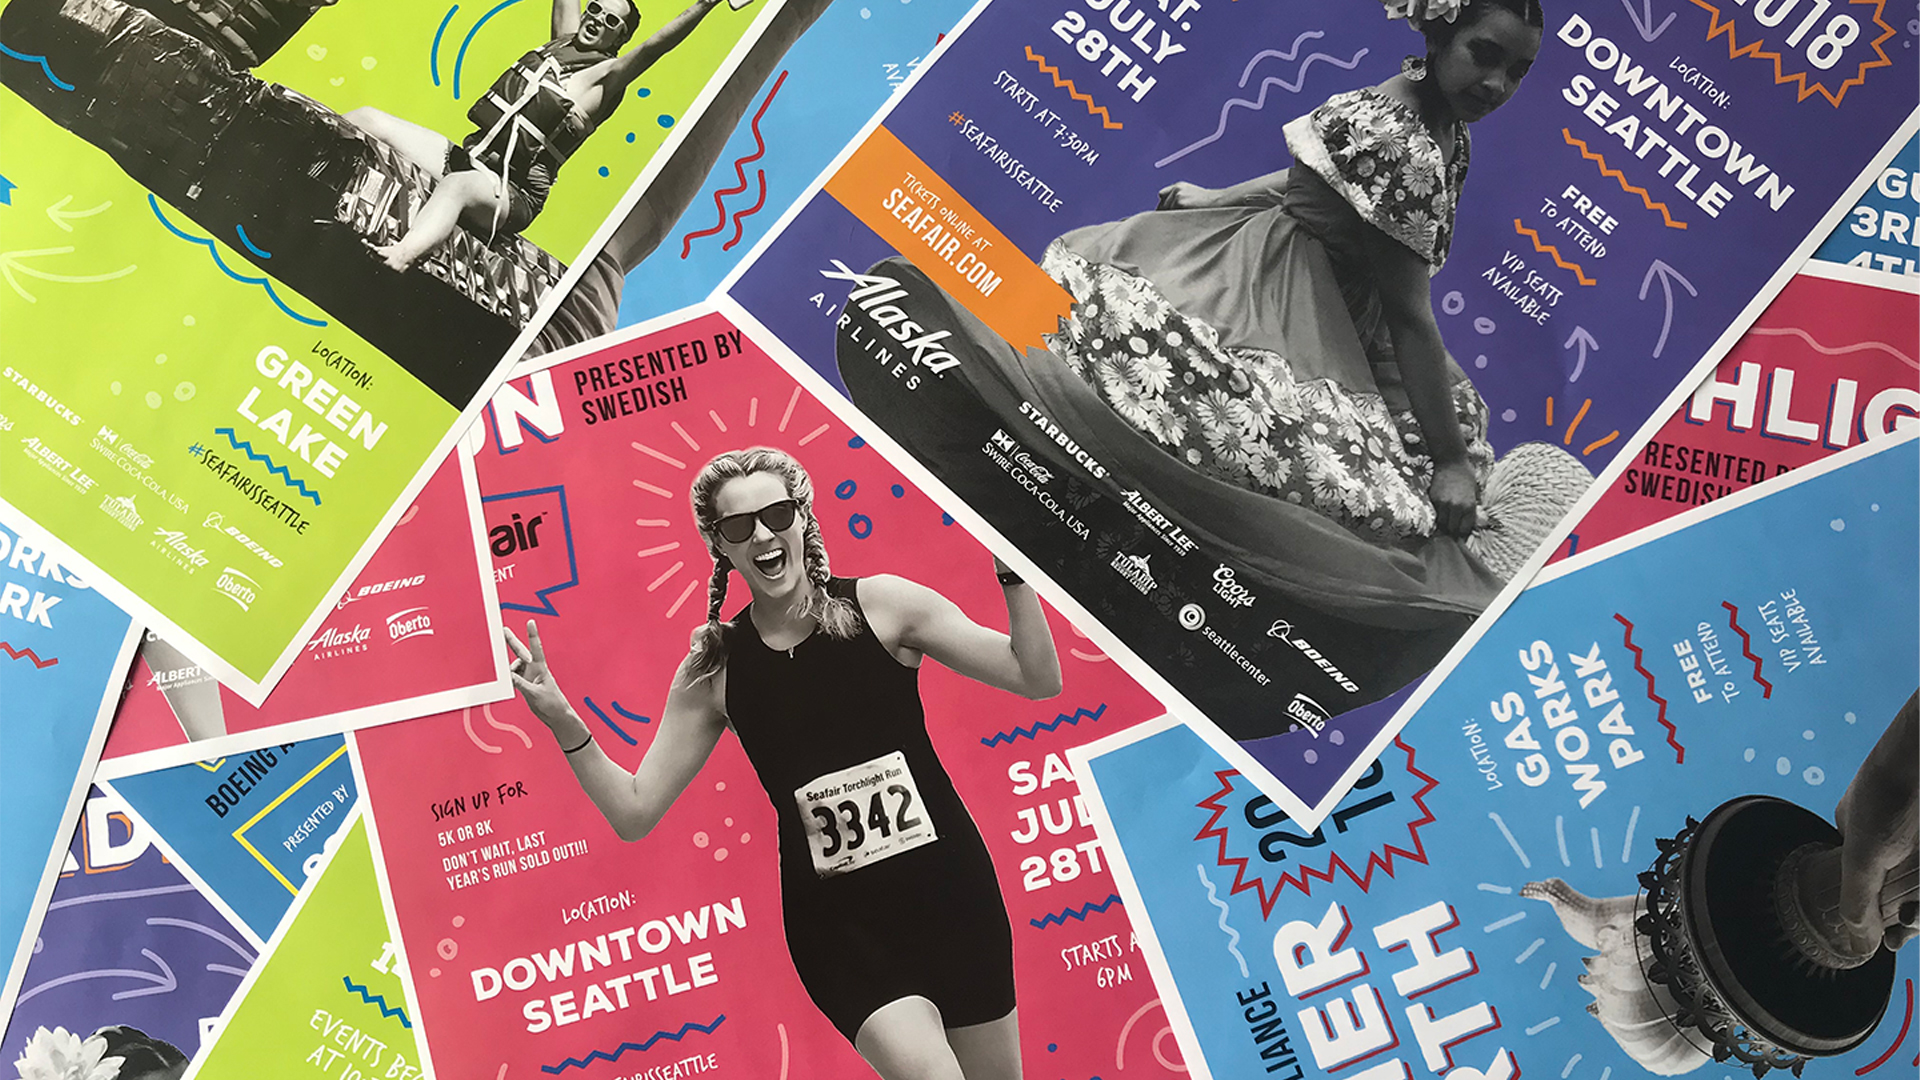 Seafair Summer Festival Event Posters